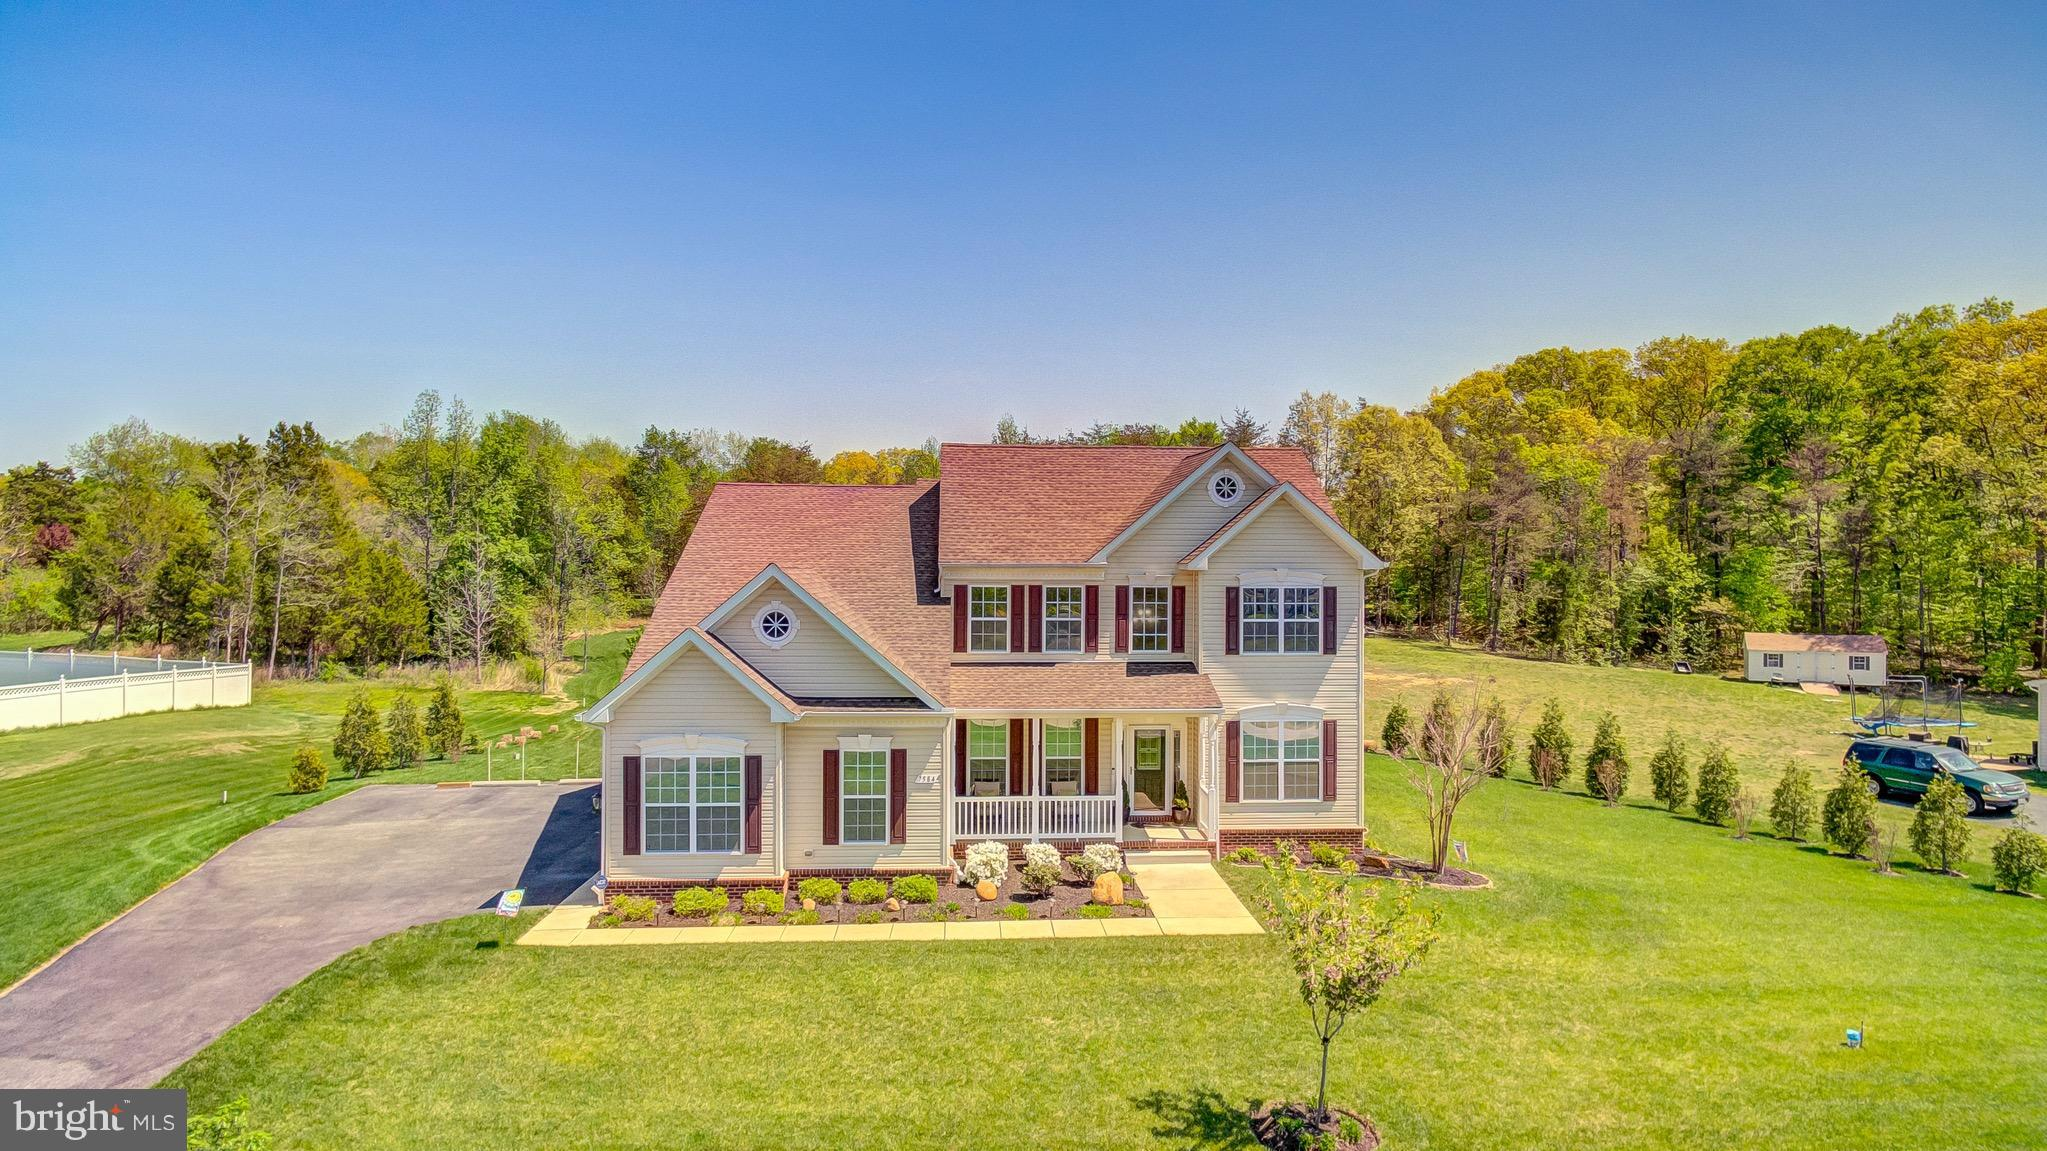 7584 KNOTTING HILL LANE, PORT TOBACCO, MD 20677